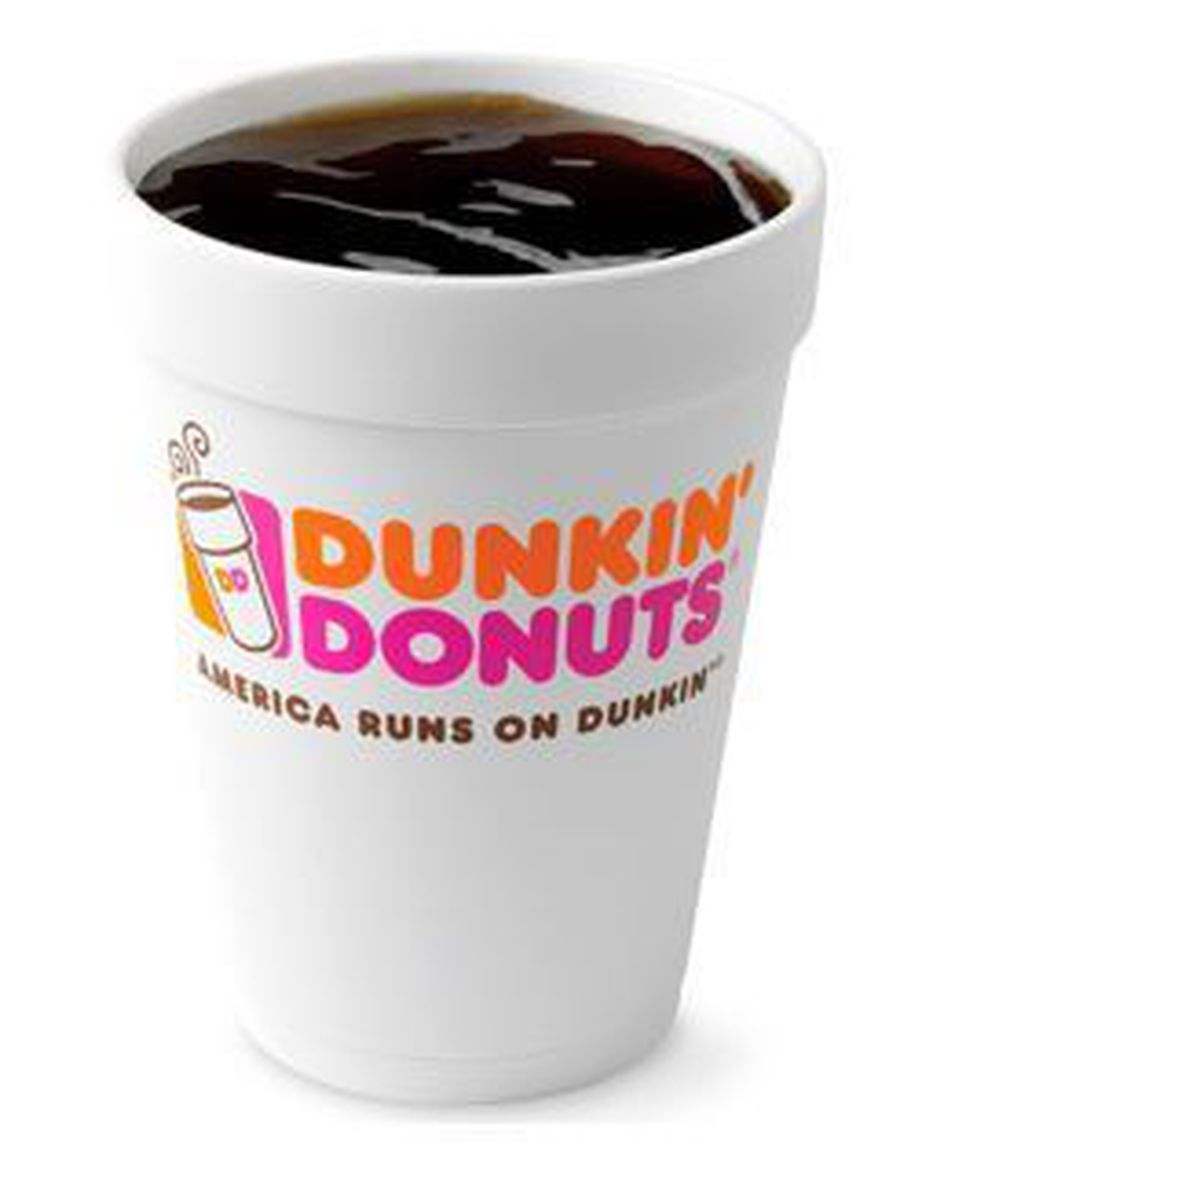 Dunkin\' Donuts coming to the Wichita Falls Area